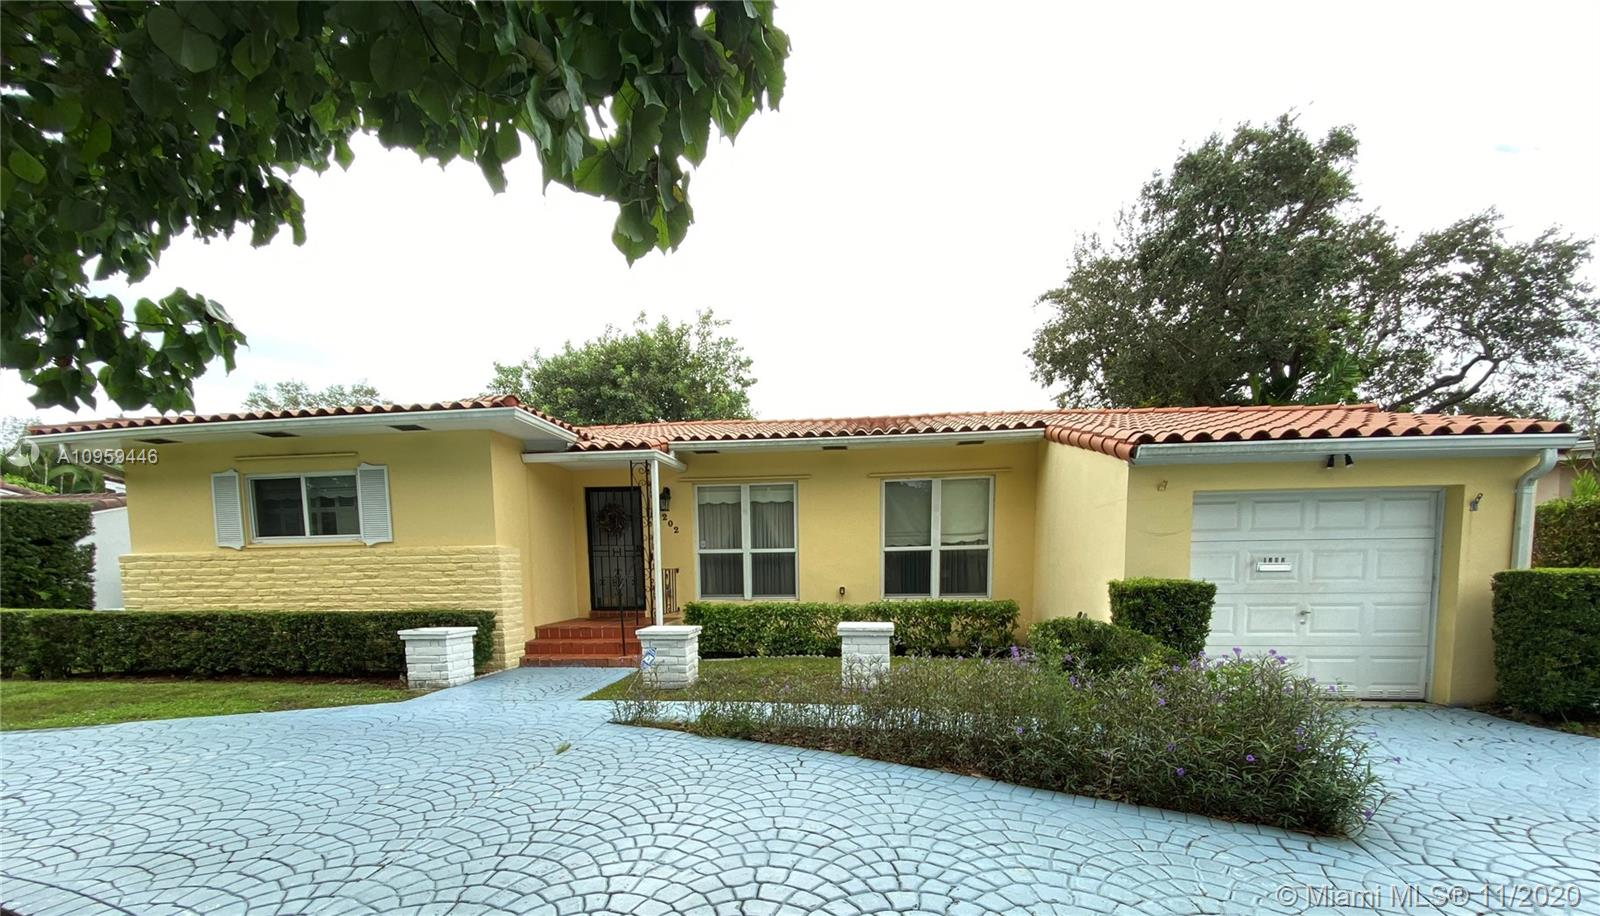 1202 NE 93rd St, Miami Shores, Florida 33138, 3 Bedrooms Bedrooms, ,2 BathroomsBathrooms,Residential,For Sale,1202 NE 93rd St,A10959446